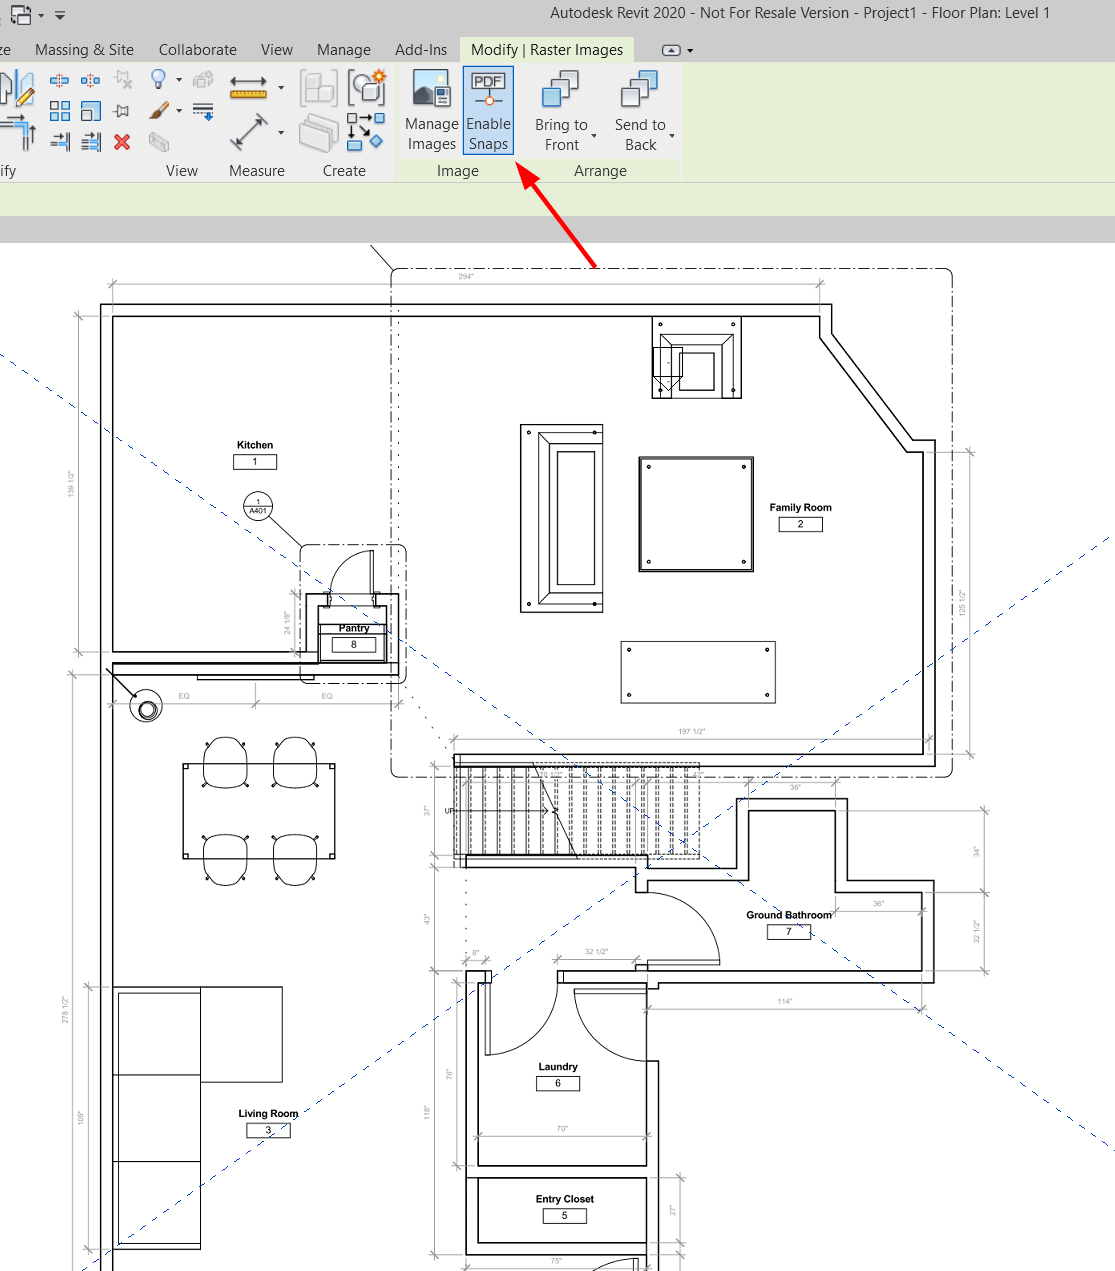 Revit 2020: UNIFI's Take on the New Features and Updates - UNIFI